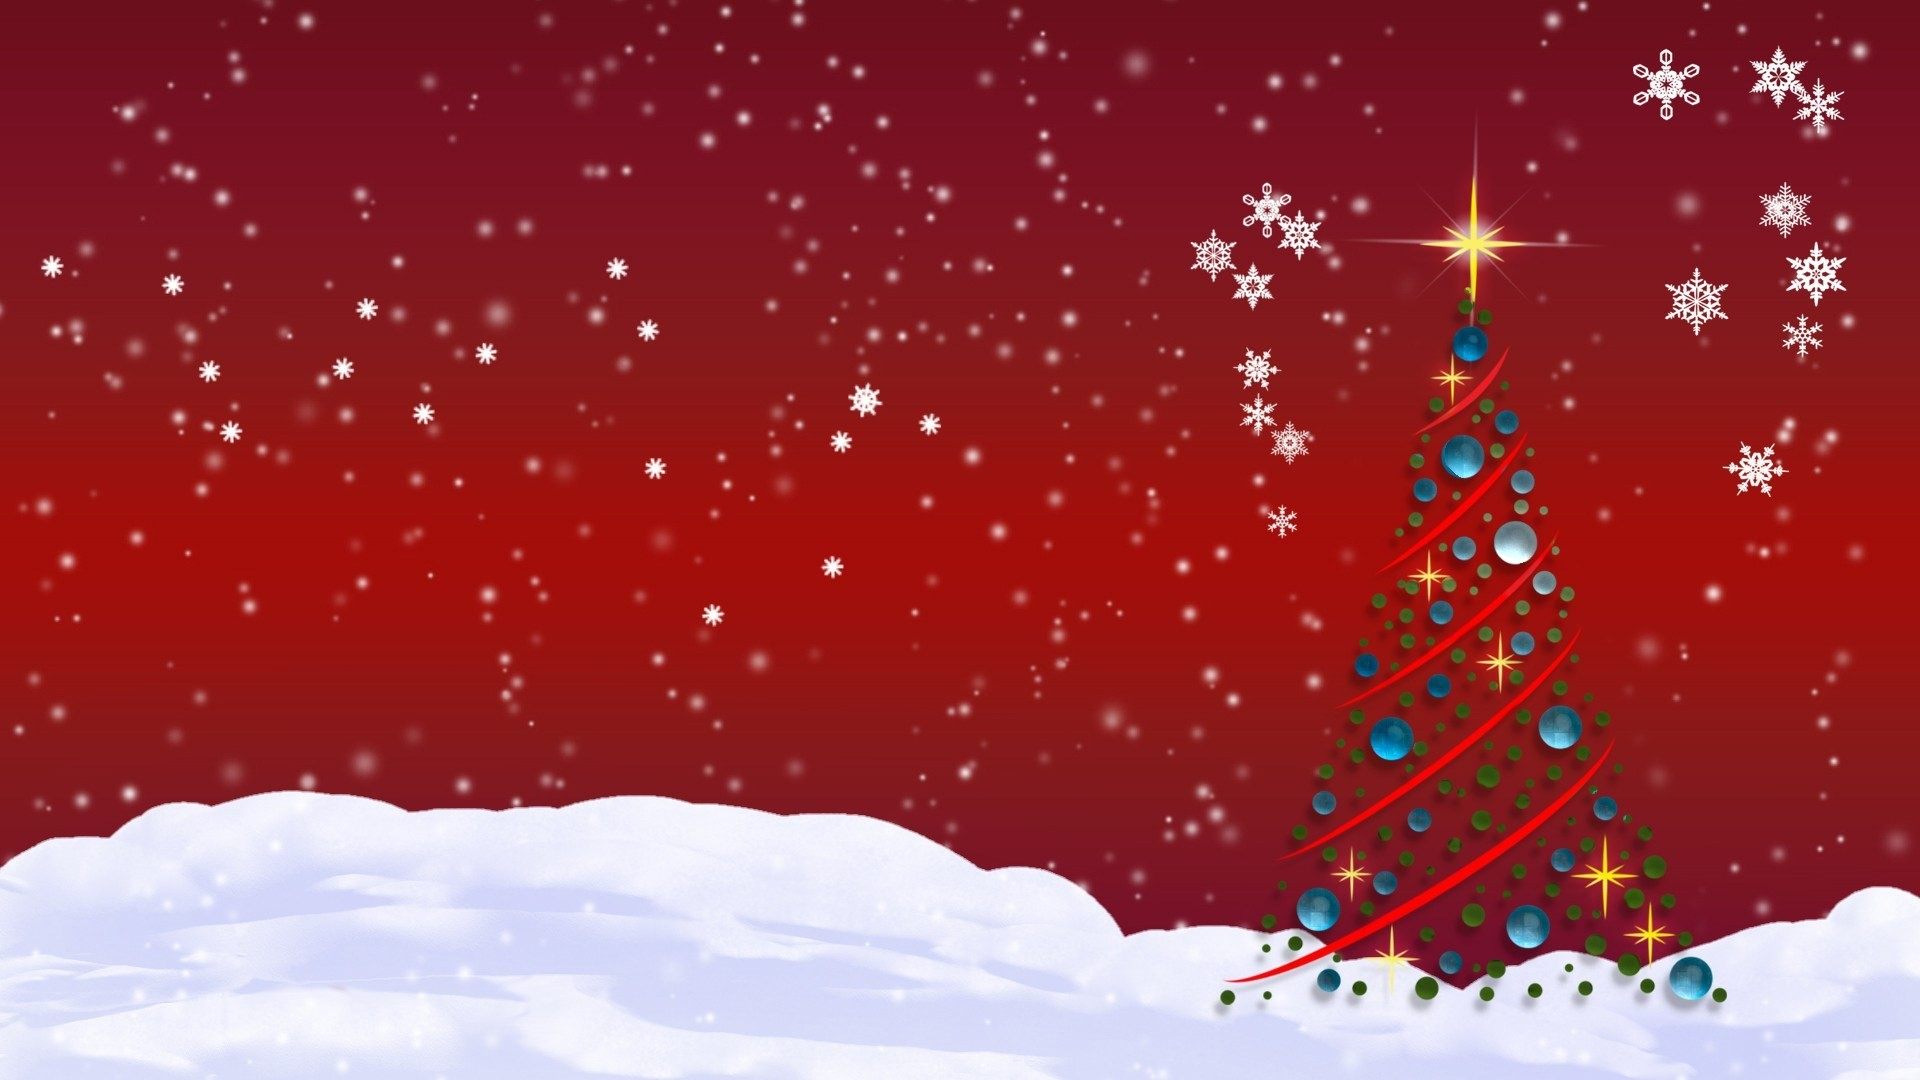 free christmas wallpaper for computer screen ✓ labzada wallpaper